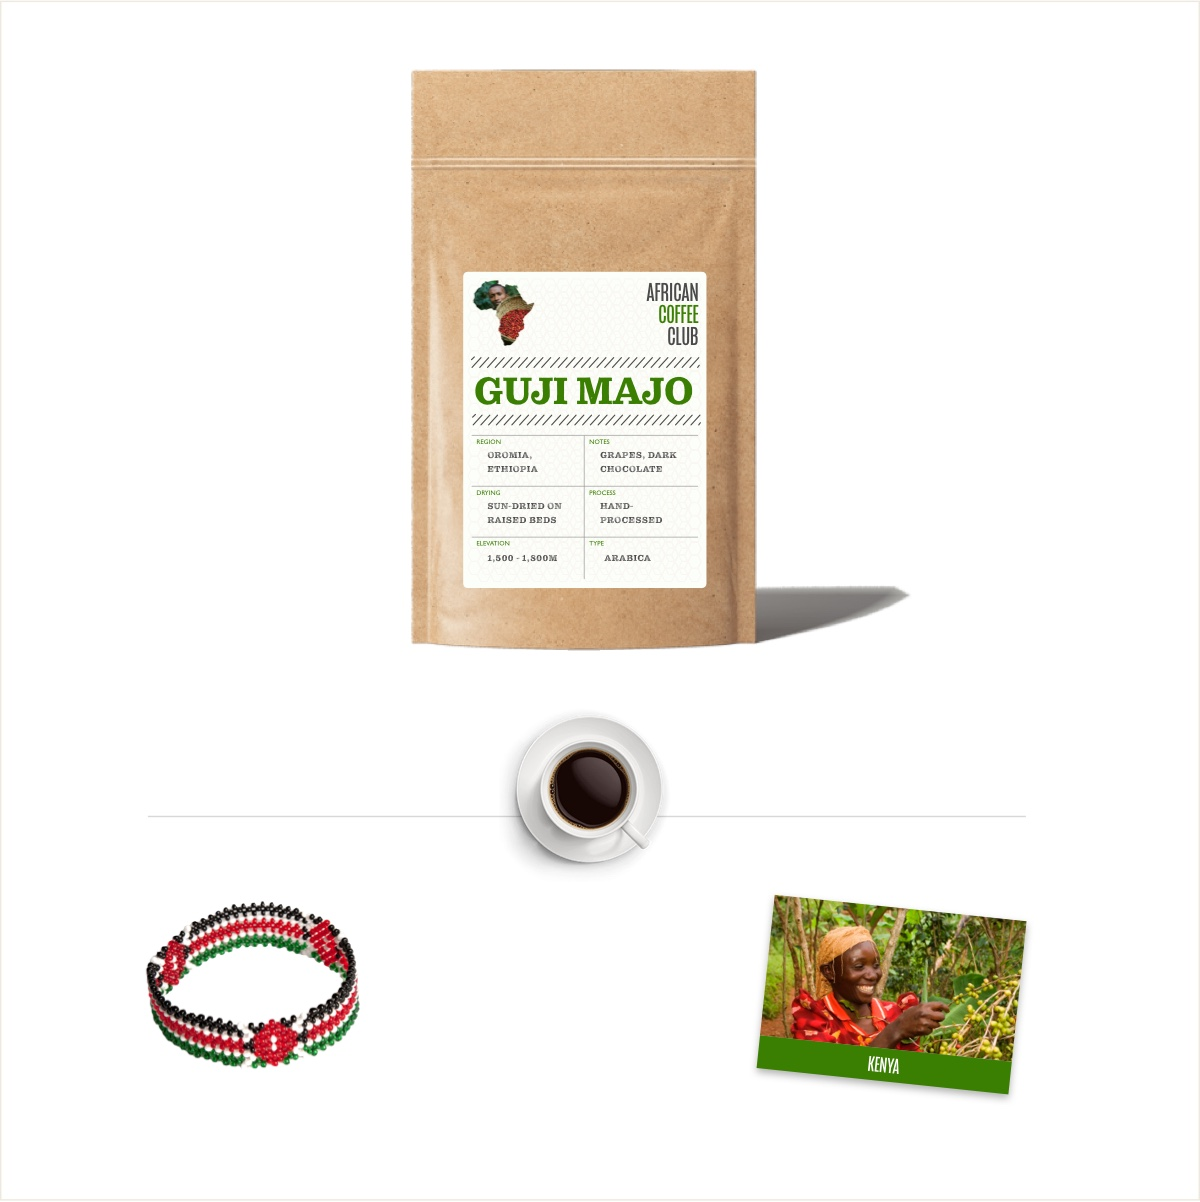 acc_product_subscription_guji_majo.jpg